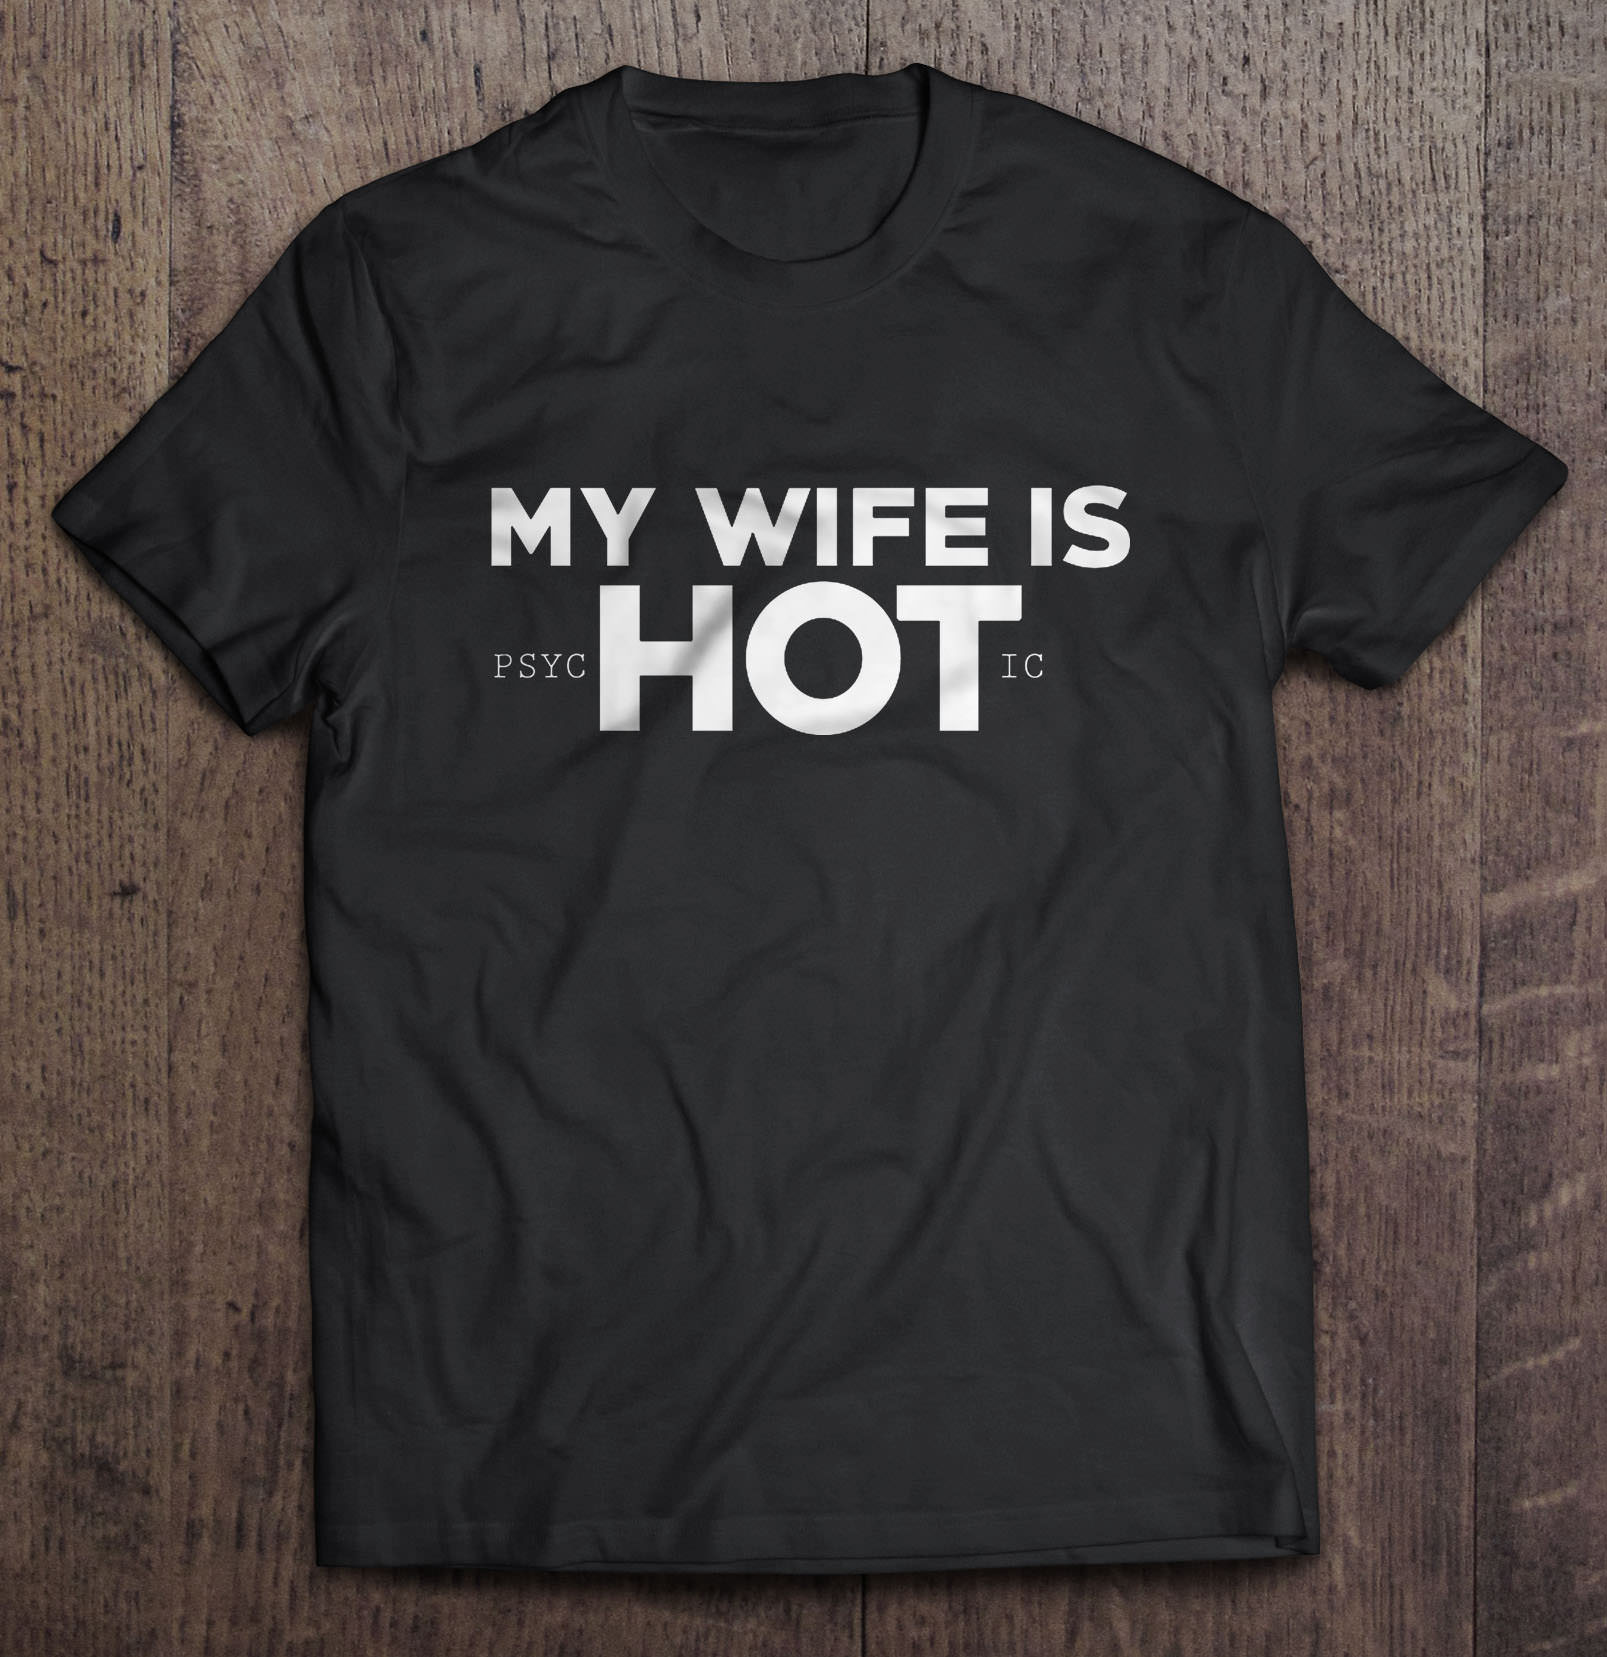 psychotic shirt wife is my